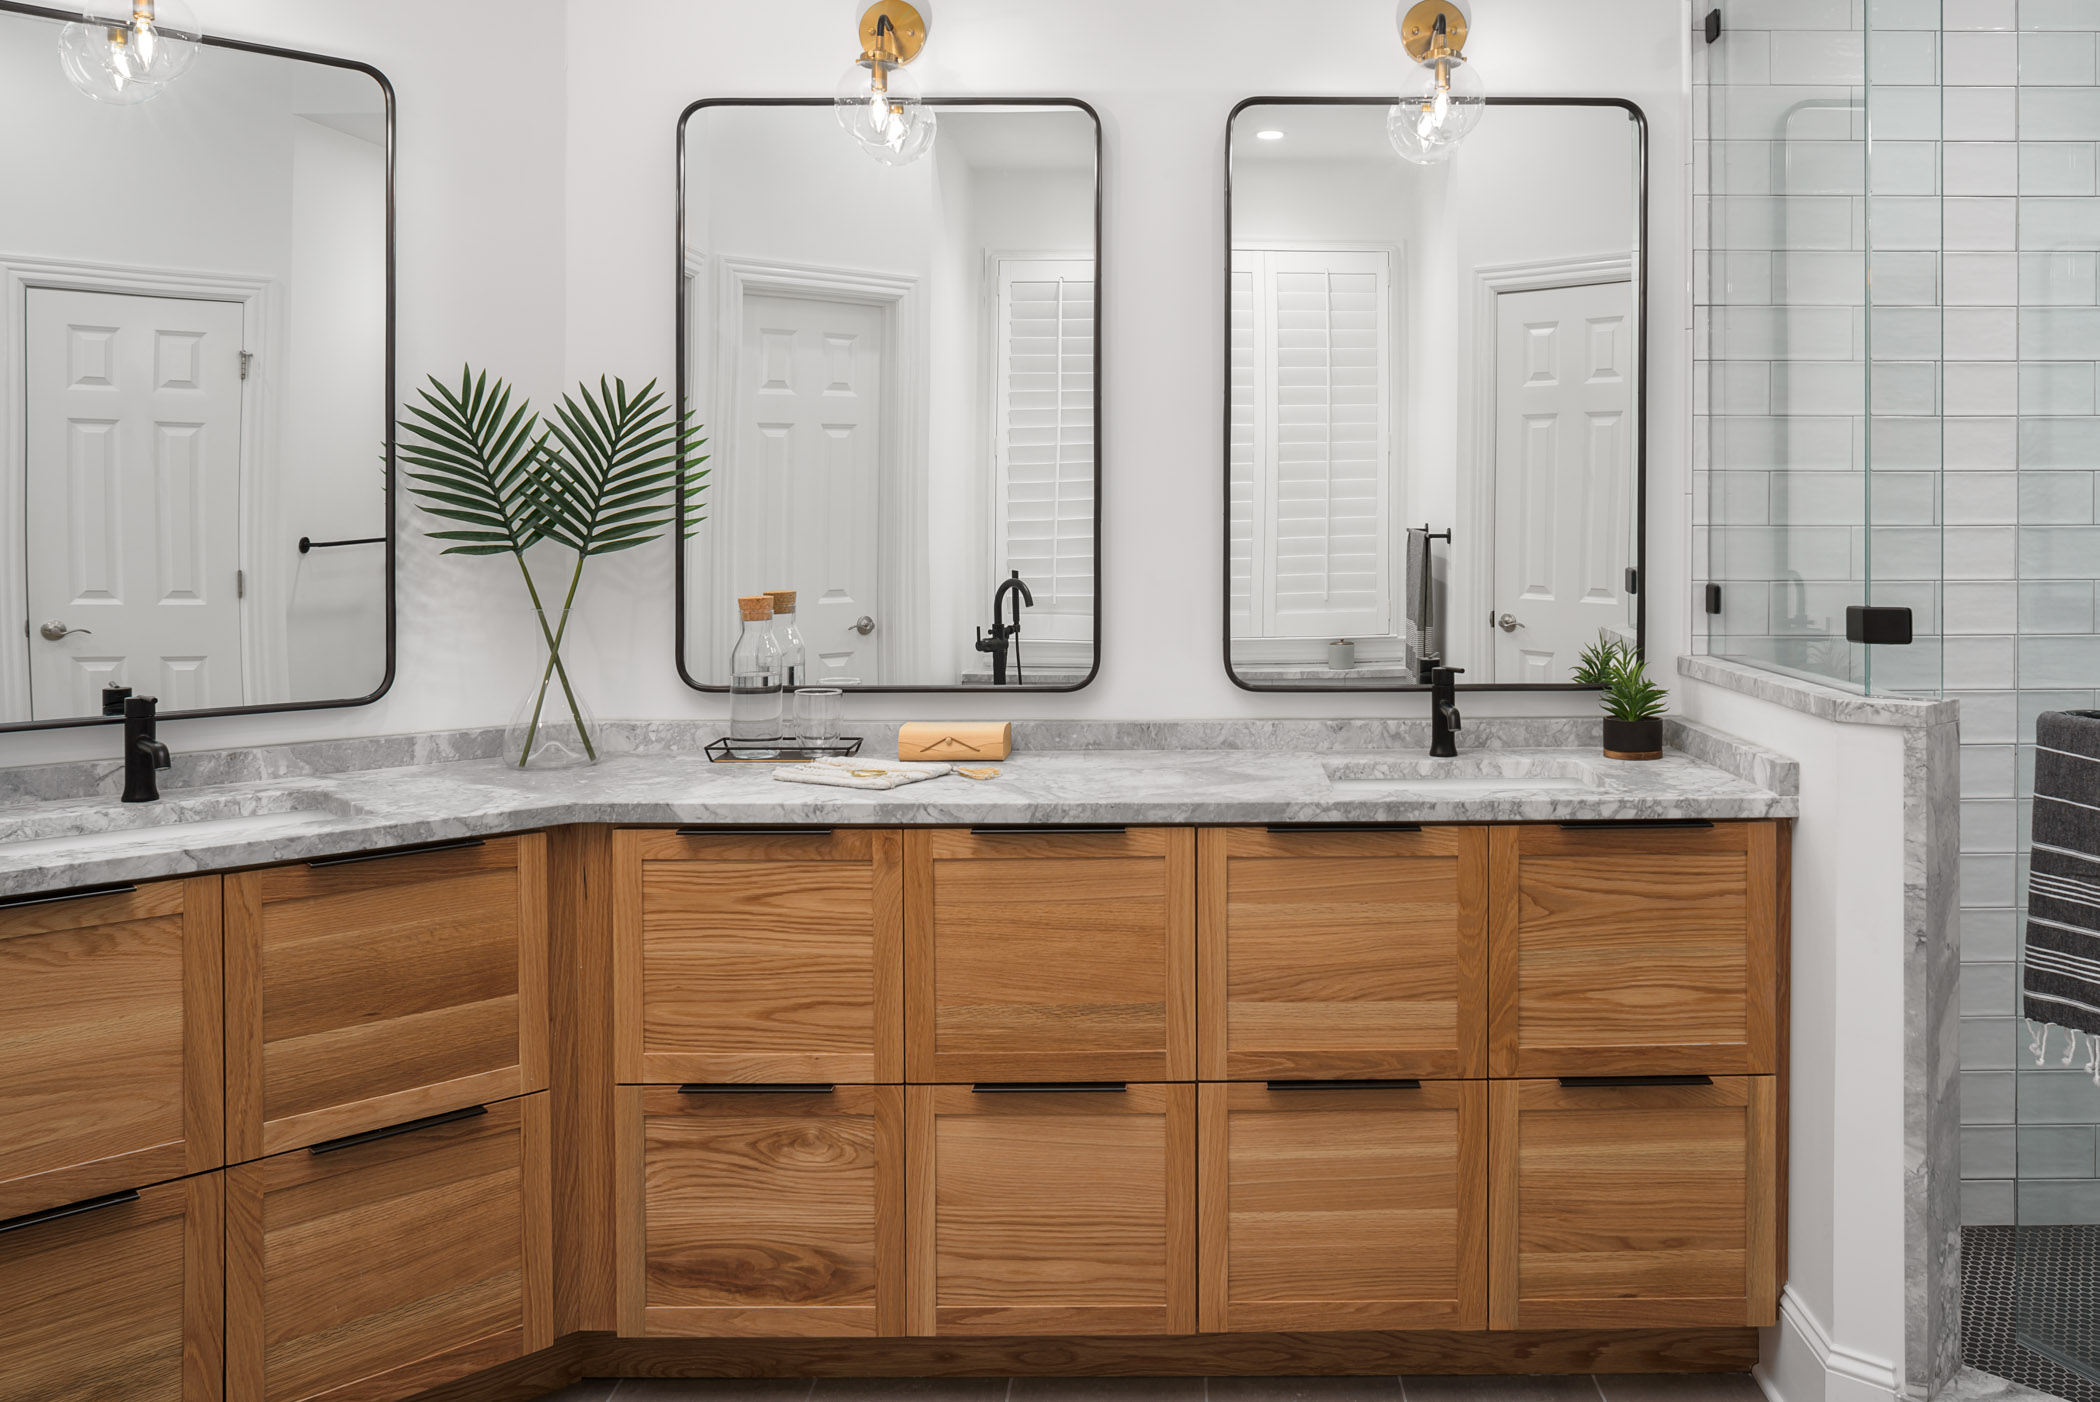 The master bathroom is arguably our favorite transformation of the whole project. Custom white oak cabinets with a honed marble top provide the perfect place to start and end everyday.